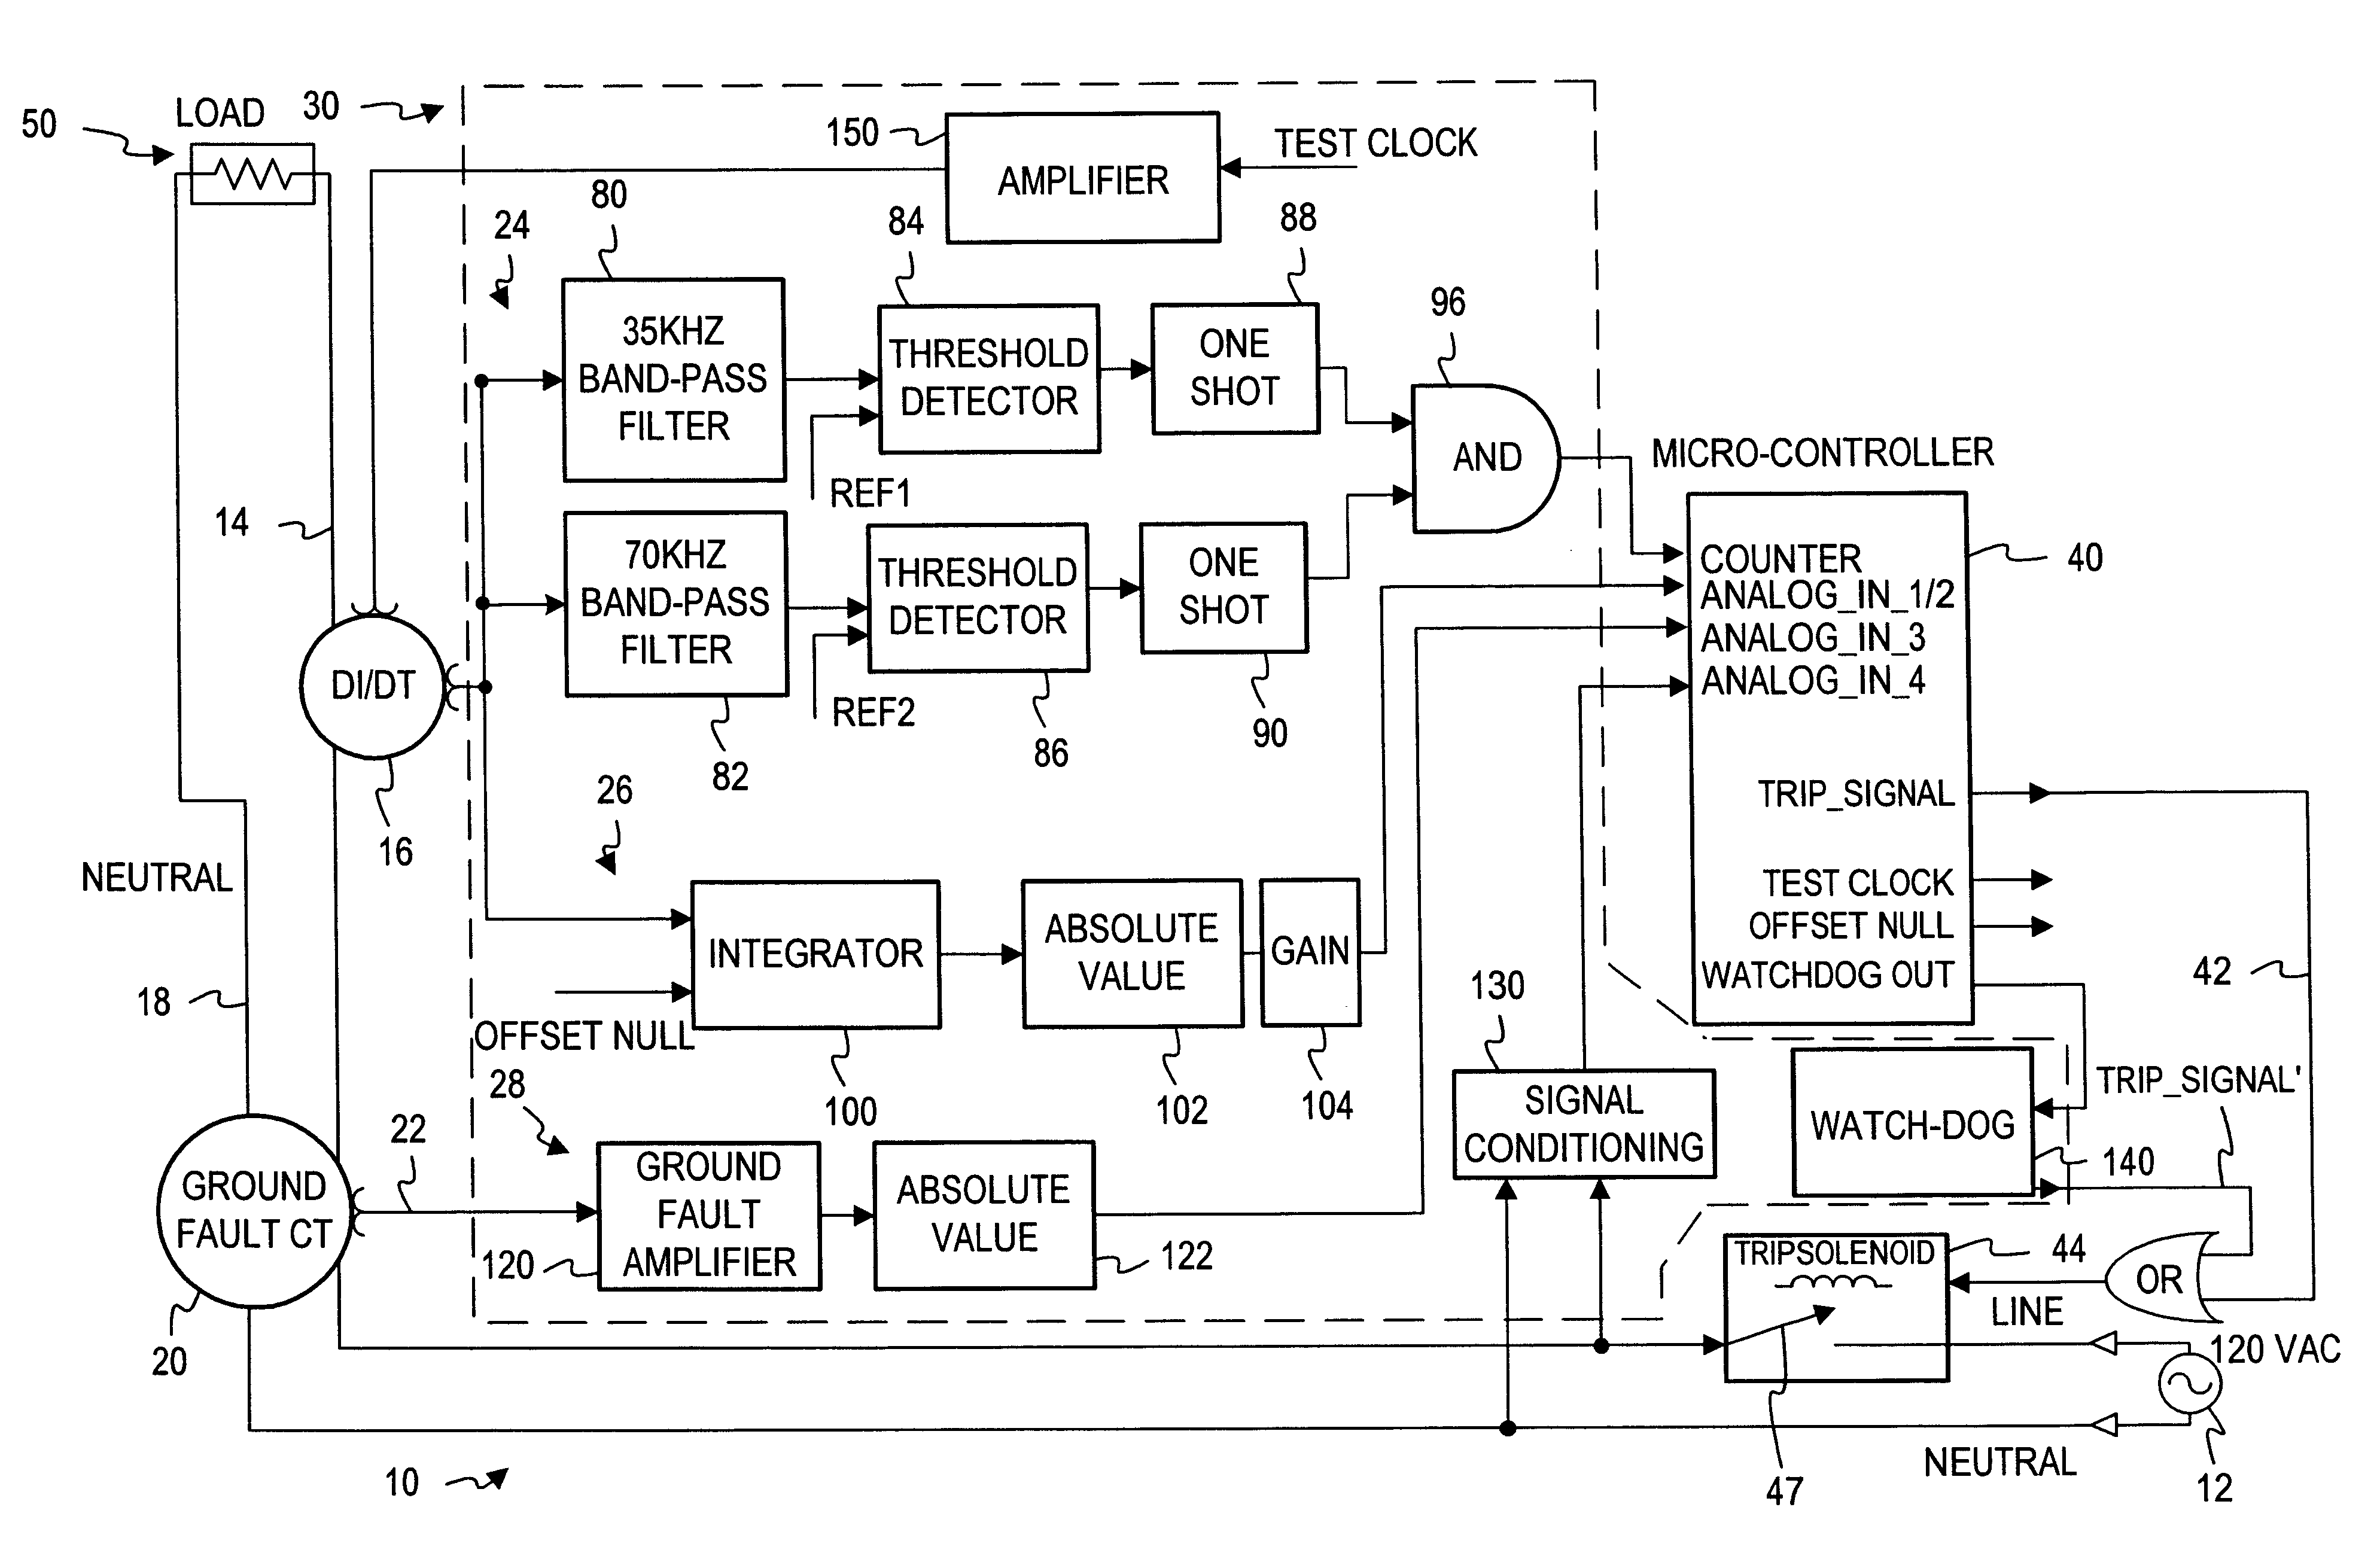 Circuit diagram for sunbeam electric blanket get